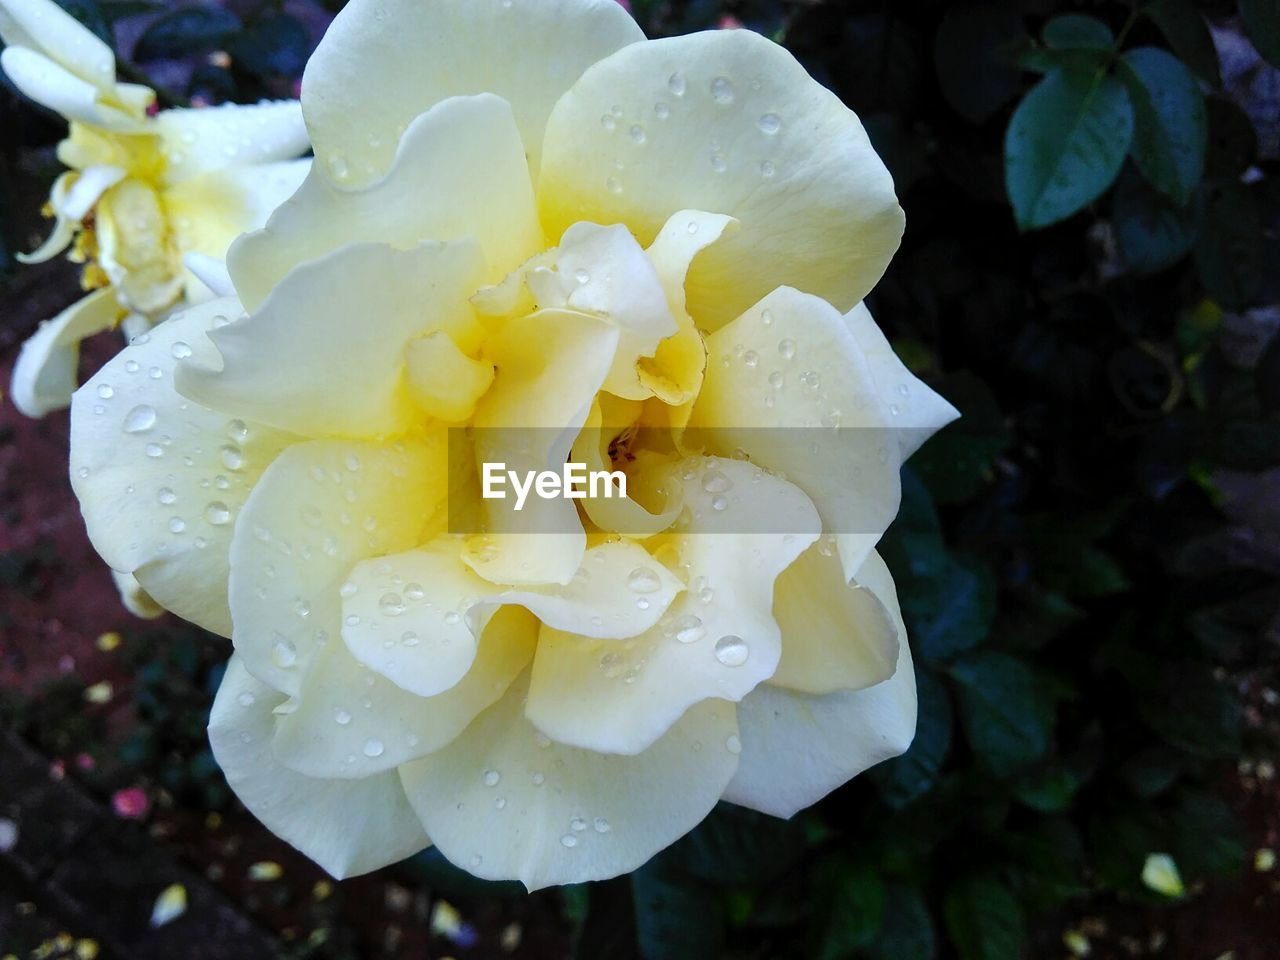 flower, petal, beauty in nature, nature, drop, freshness, fragility, wet, growth, flower head, water, no people, outdoors, close-up, plant, rose - flower, day, blooming, raindrop